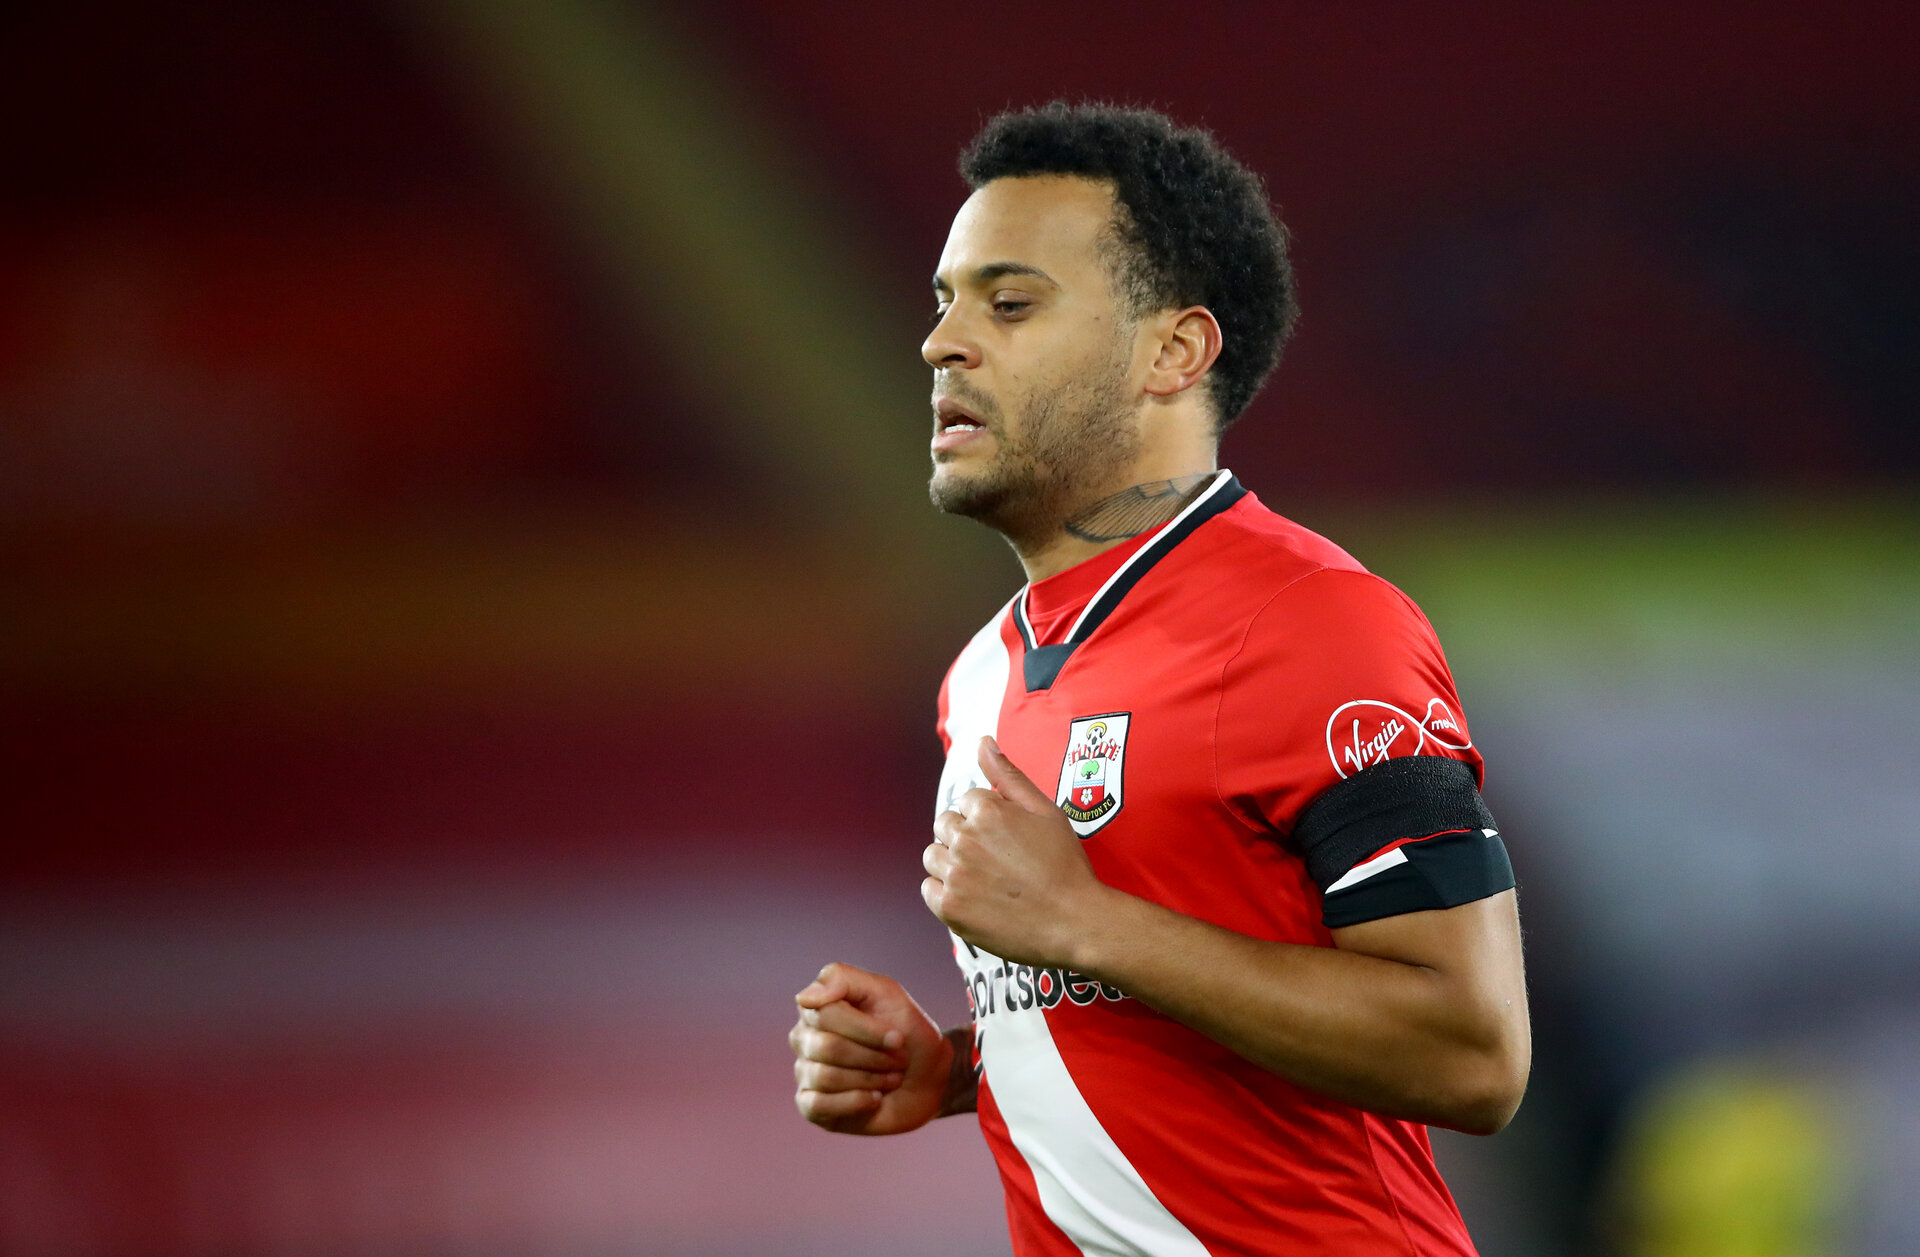 SOUTHAMPTON, ENGLAND - JANUARY 30: Ryan Bertrand of Southampton during the Premier League match between Southampton and Aston Villa at St Mary's Stadium on January 30, 2021 in Southampton, England. Sporting stadiums around the UK remain under strict restrictions due to the Coronavirus Pandemic as Government social distancing laws prohibit fans inside venues resulting in games being played behind closed doors. (Photo by Matt Watson/Southampton FC via Getty Images)